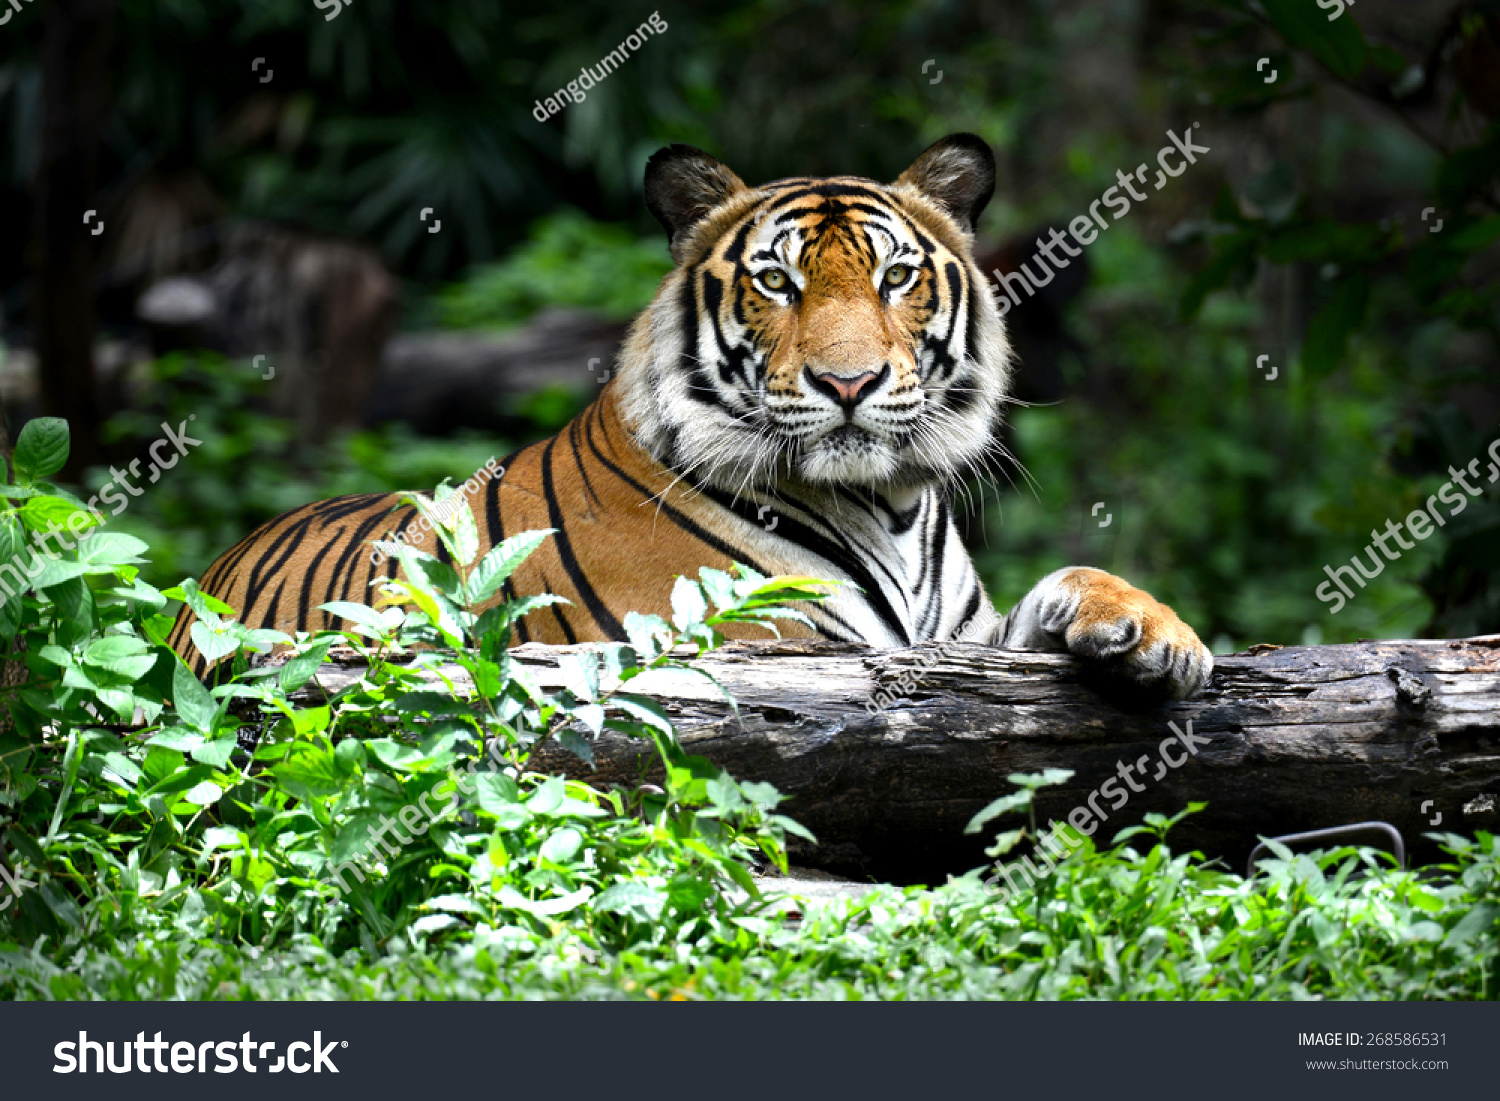 Bengal tiger forest show head leg stock photo 268586531 - Show me a picture of the tiger ...